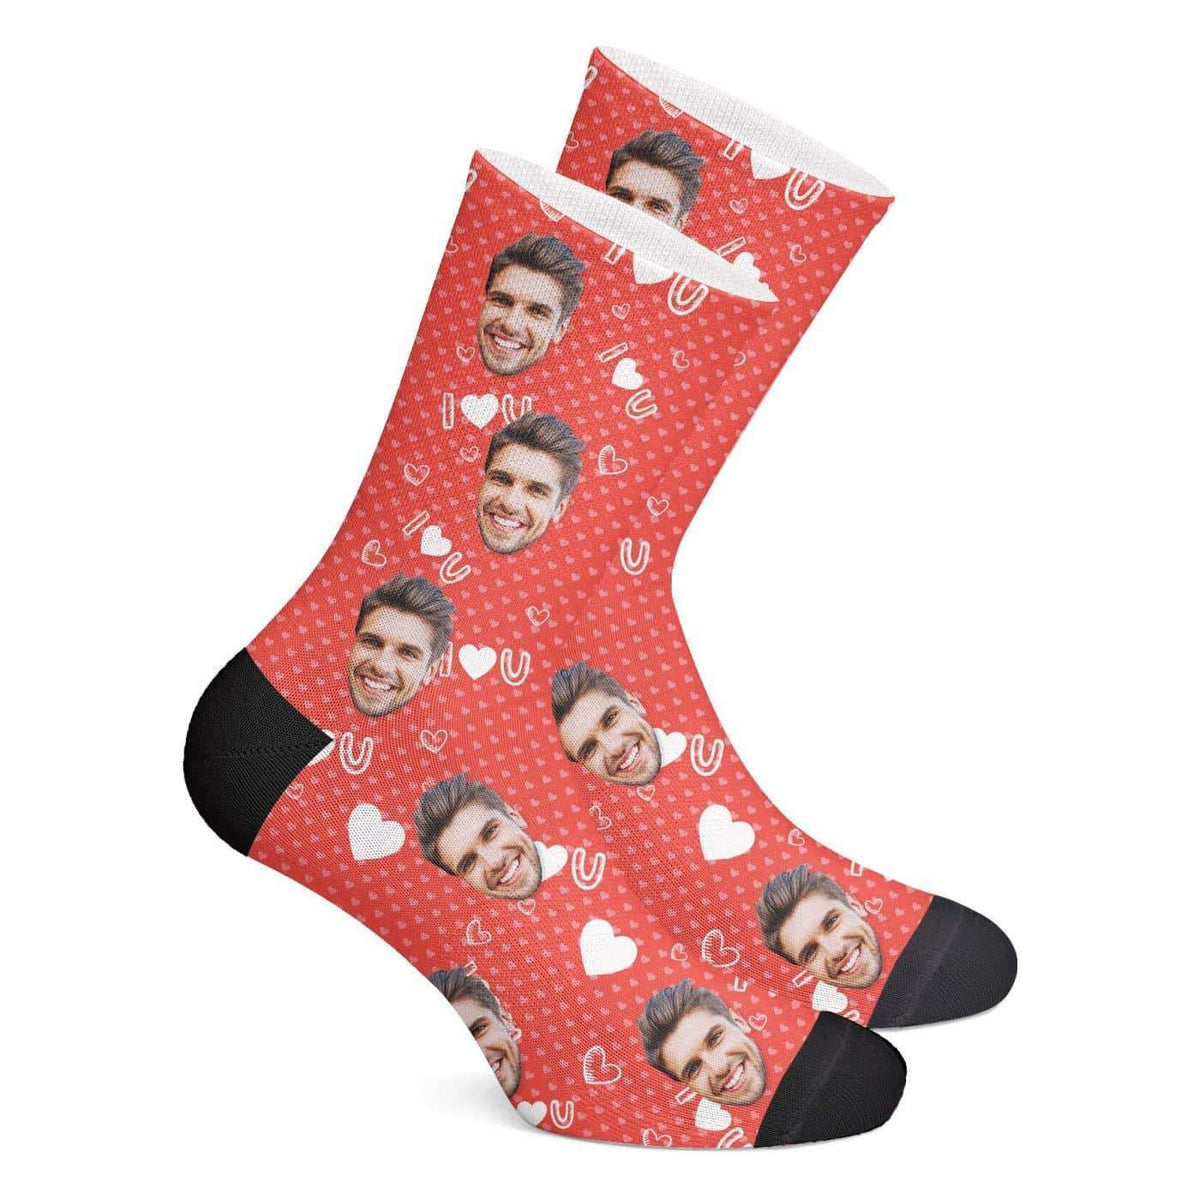 Custom Love Socks - Myfacesocksuk